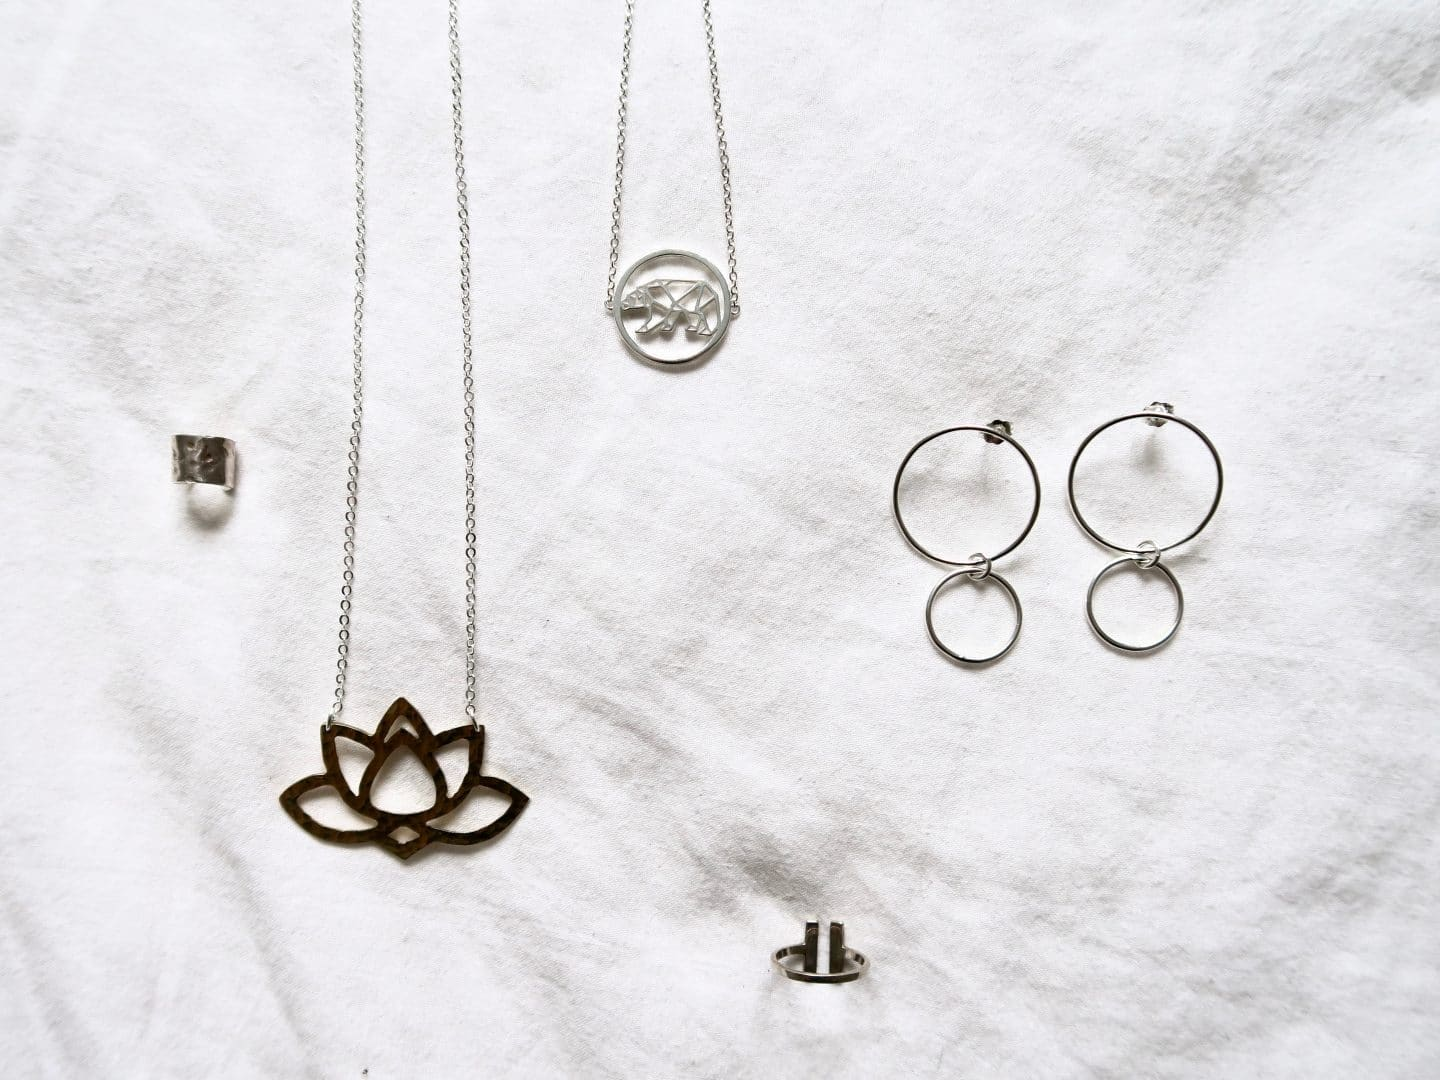 Ethical Jewellery with Meaning | Curiously Conscious